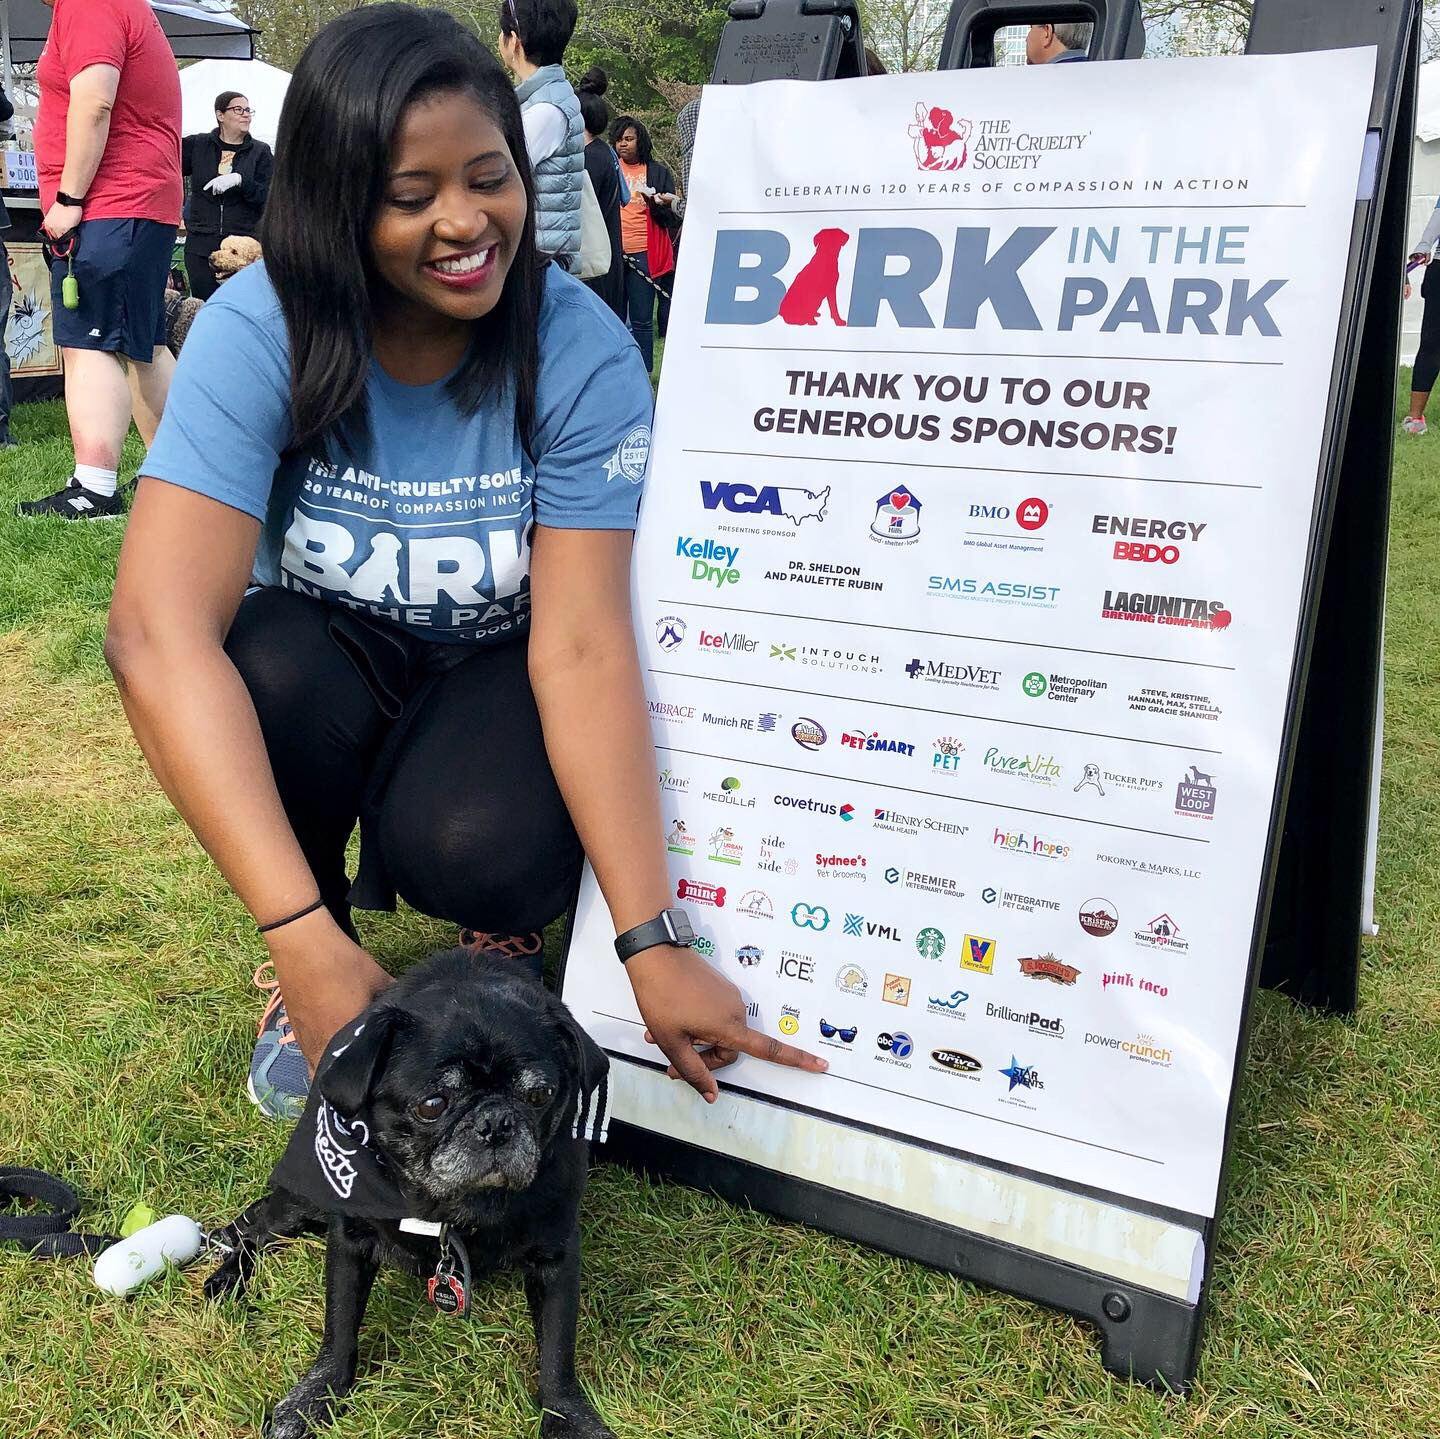 Anti-Cruelty Society - Bark in the Park